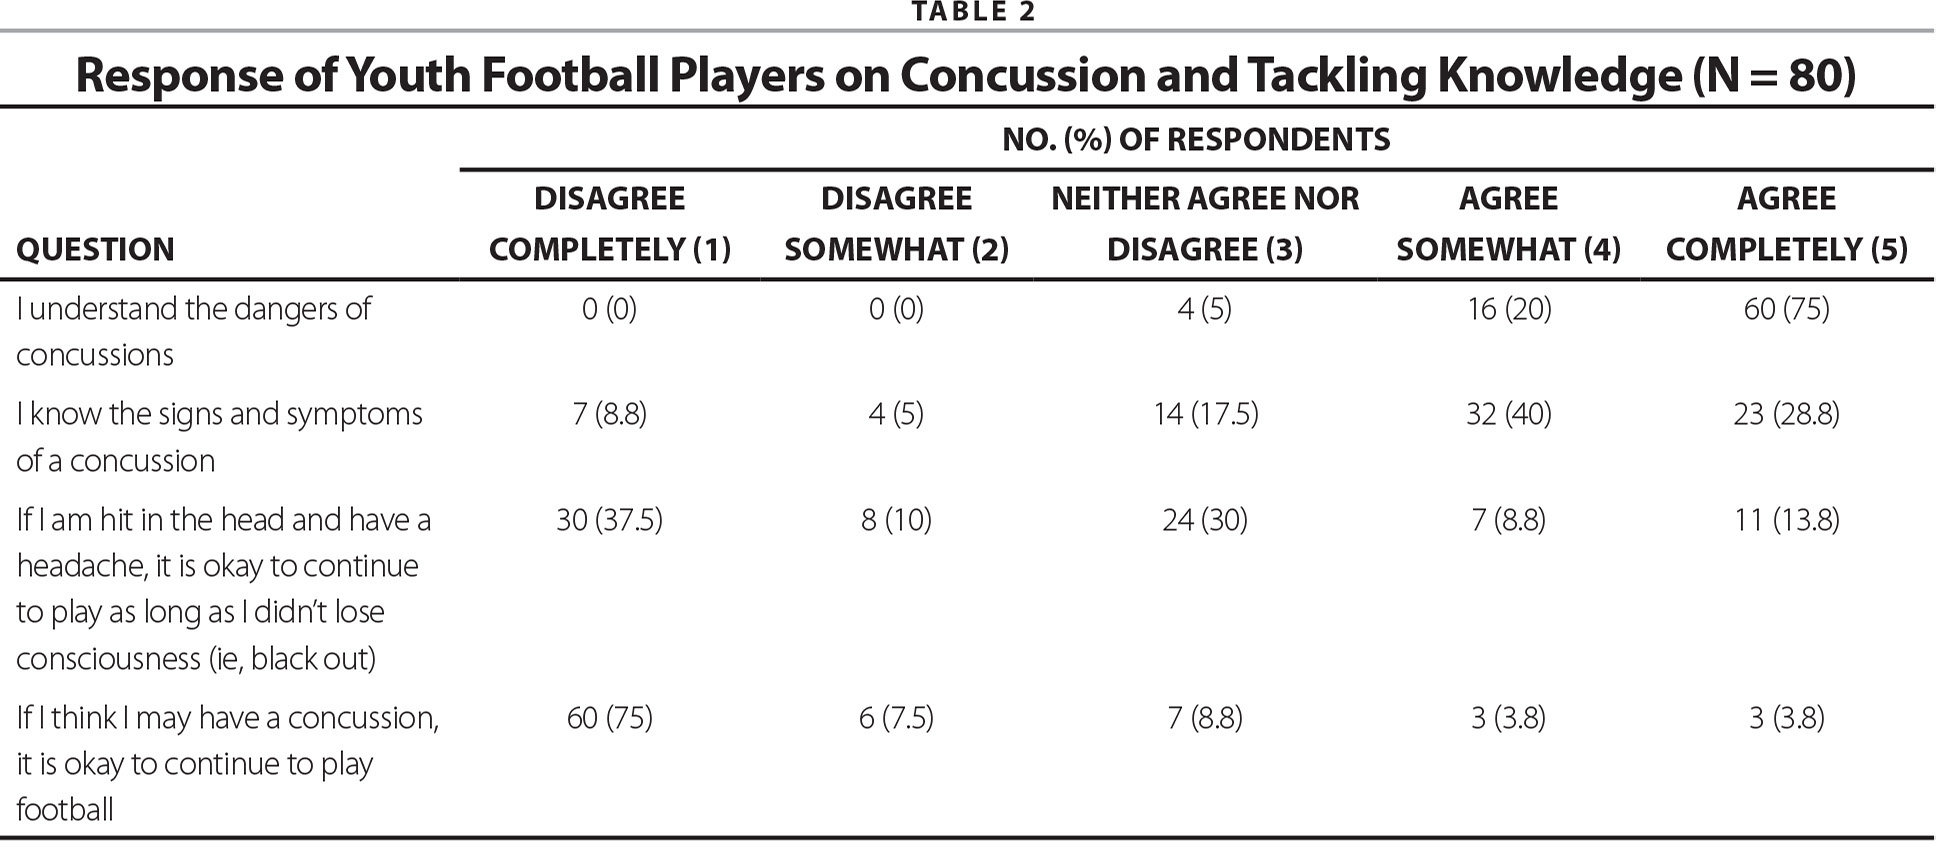 Response of Youth Football Players on Concussion and Tackling Knowledge (N = 80)